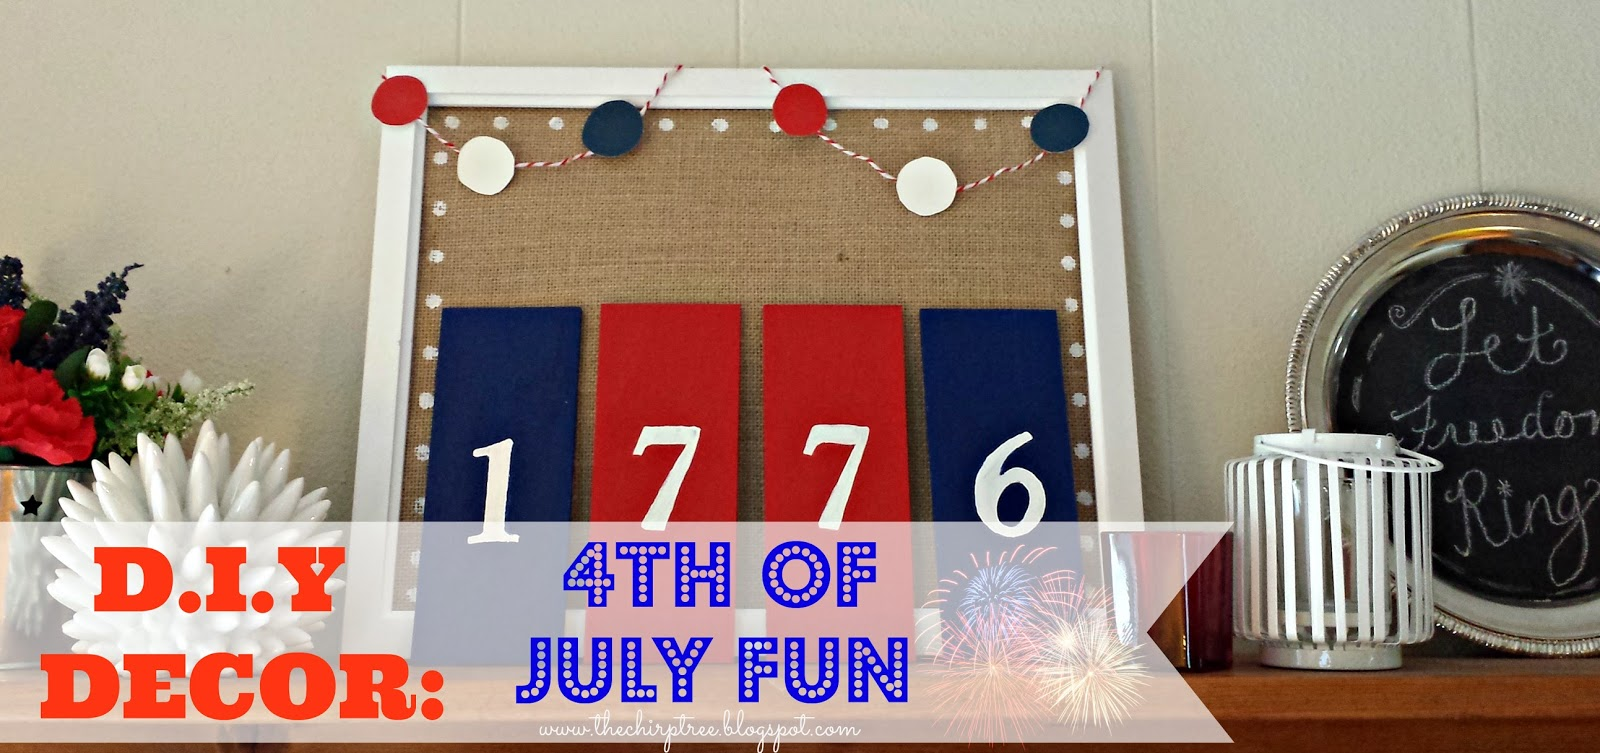 the chirp tree d i y decor 4th of july fun